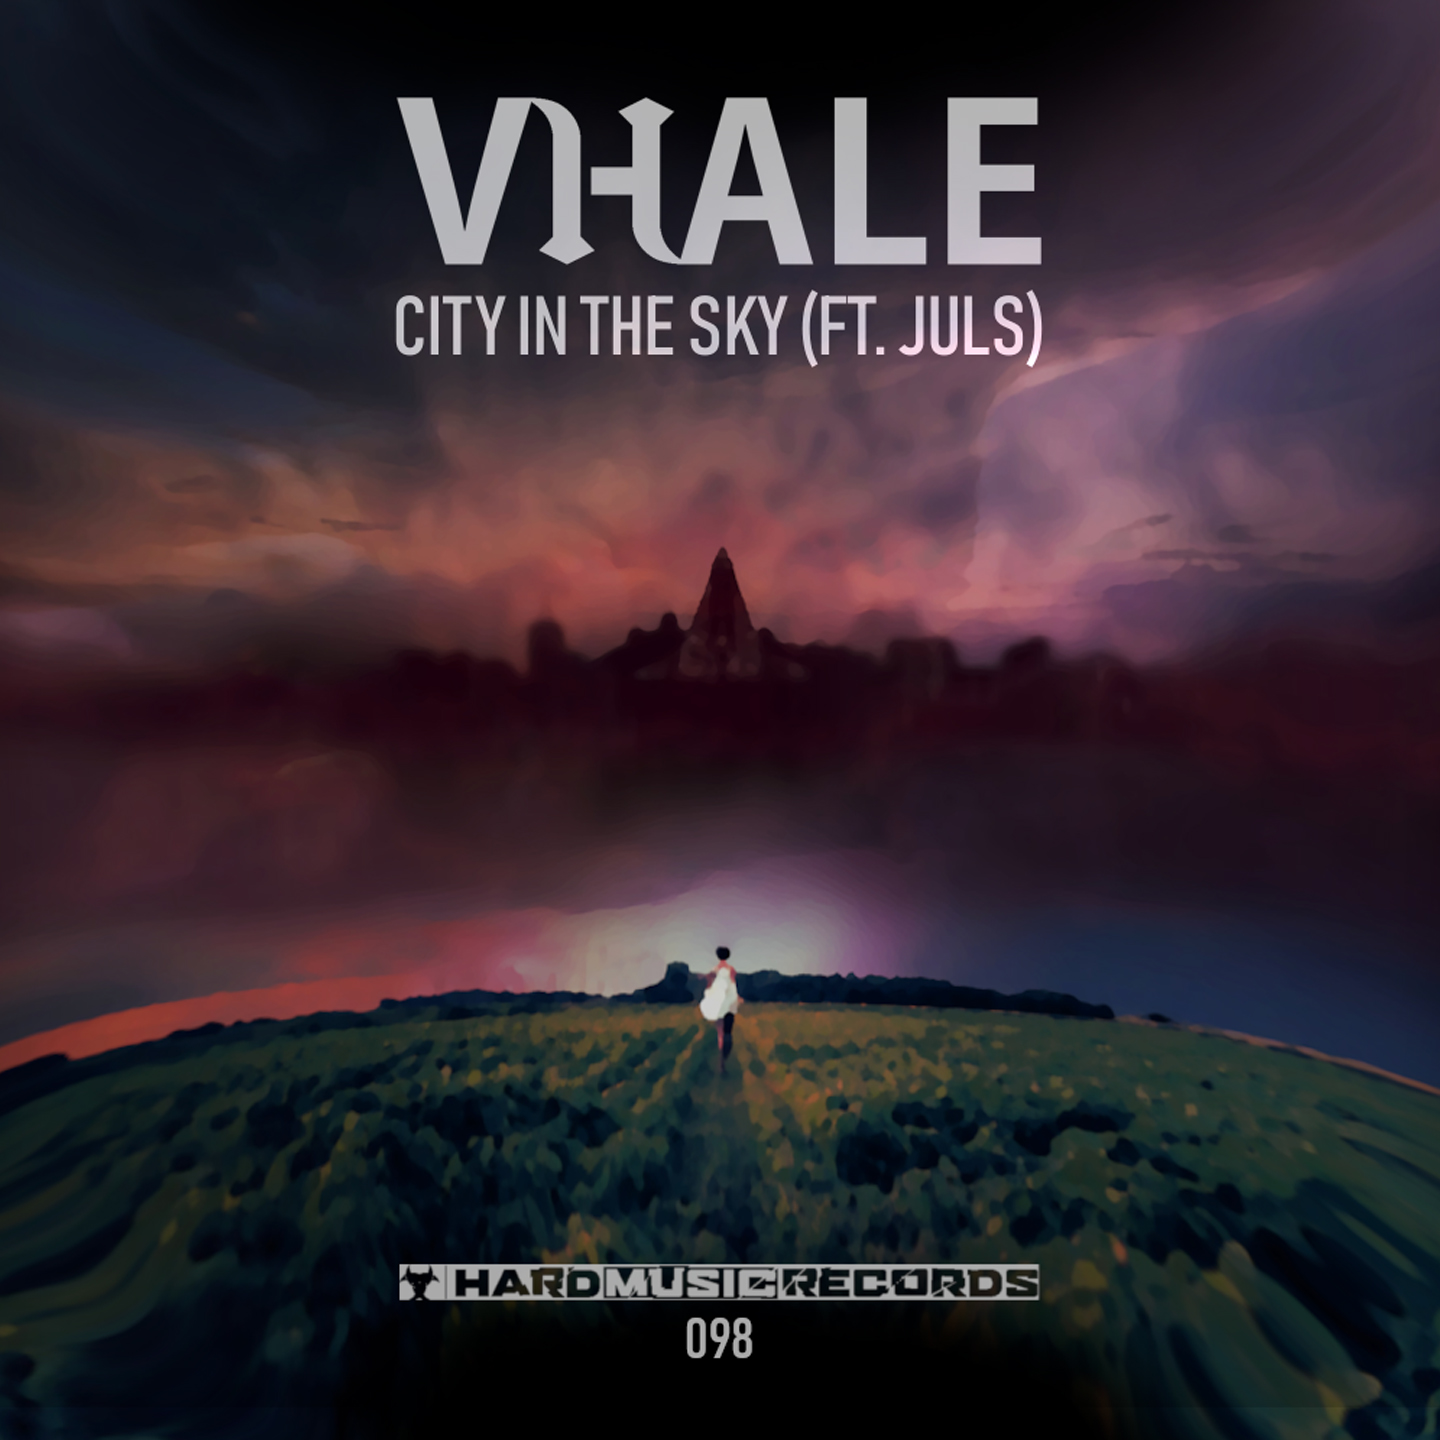 City In The Sky by Vhale ft. Juls